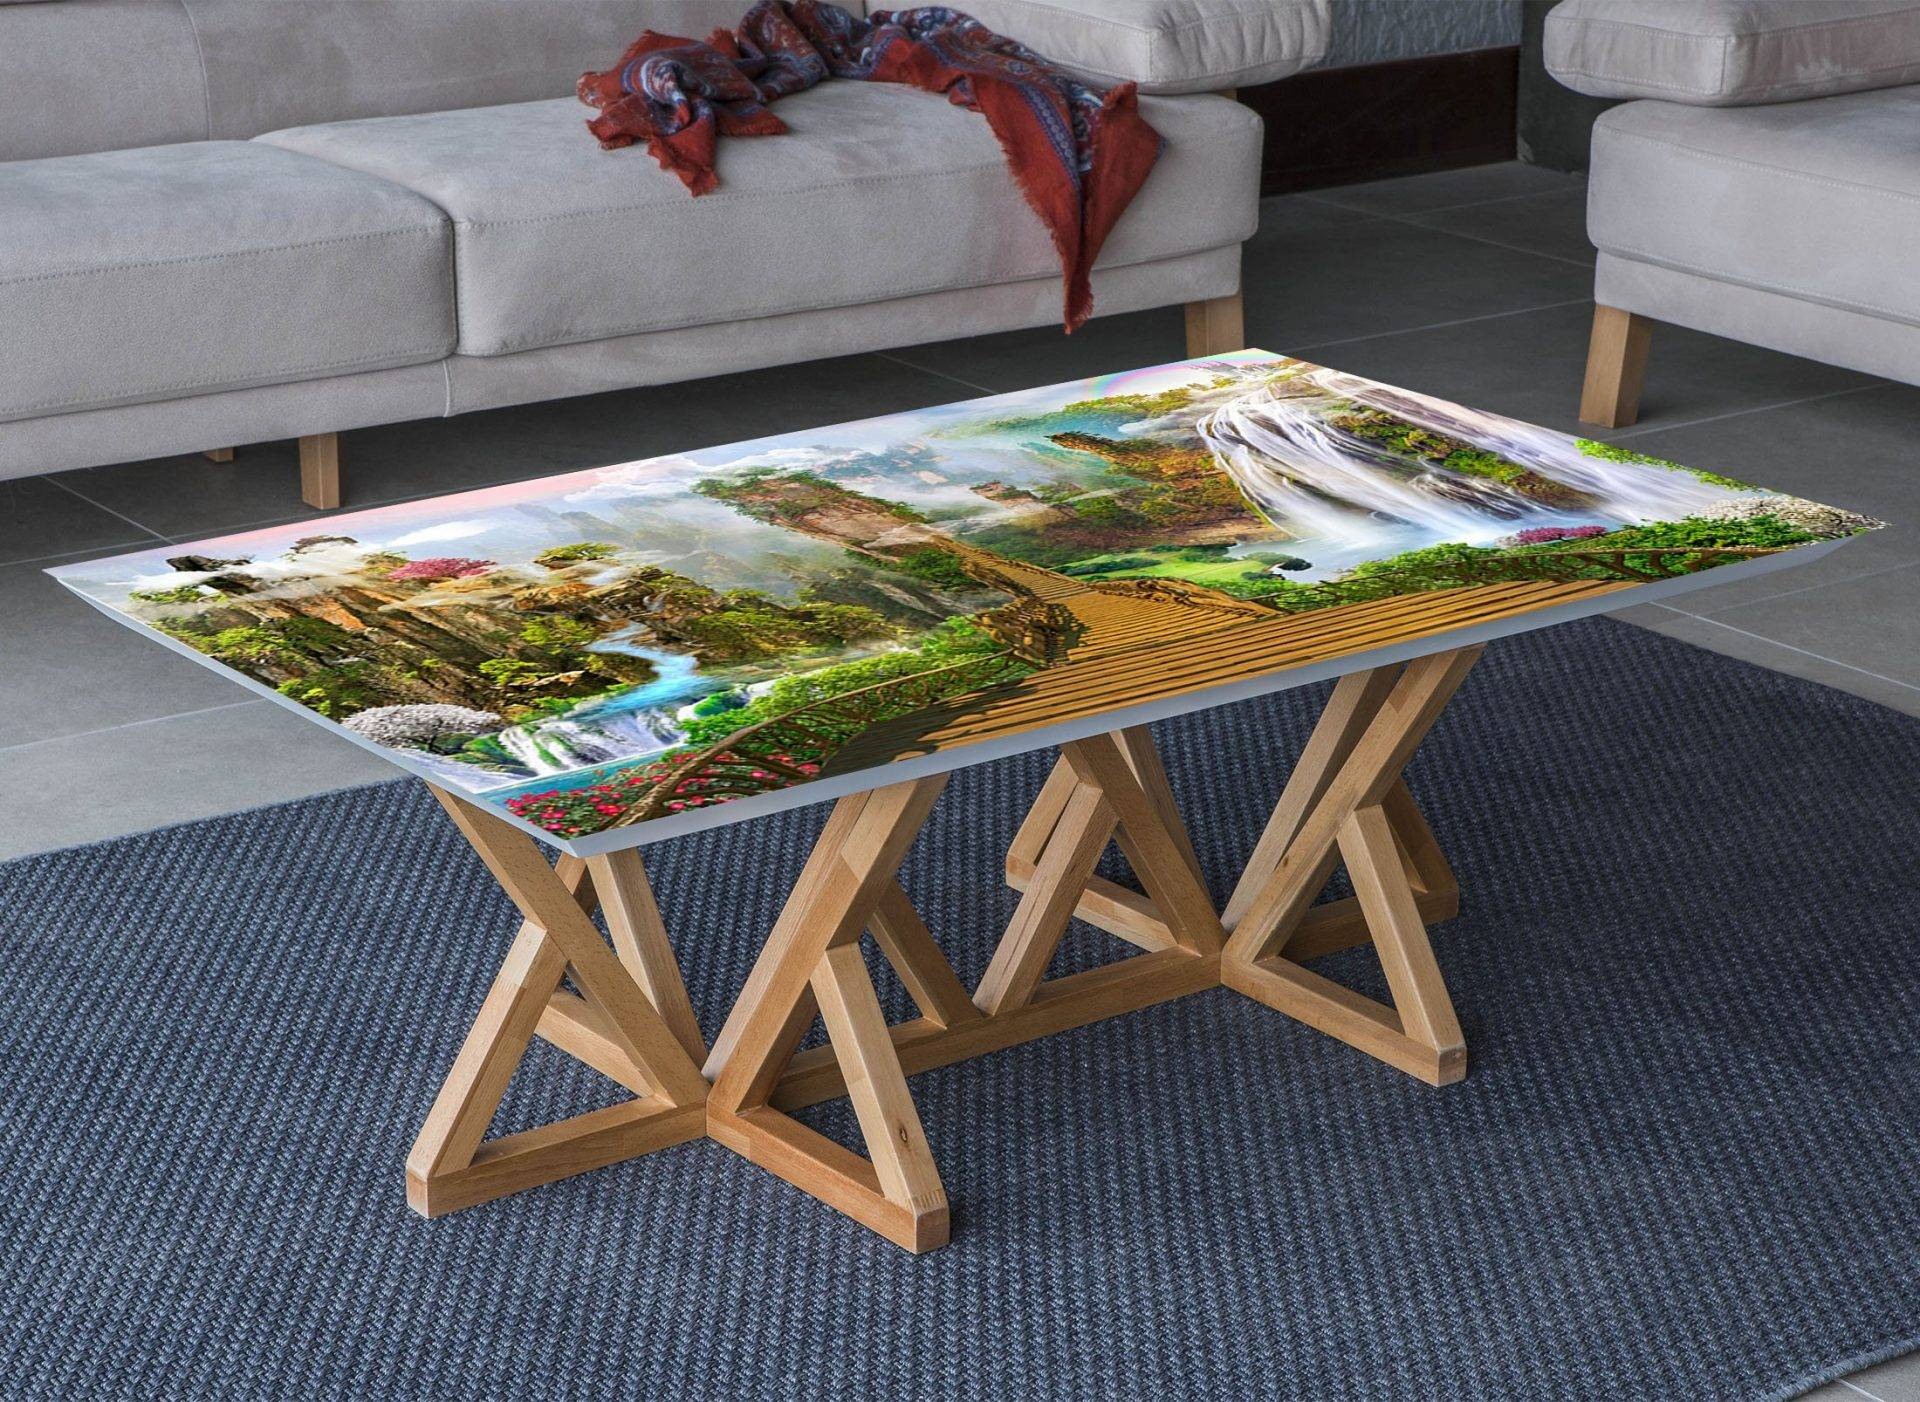 Mountain Bridge Landscape Laminated Vinyl Cover Self-Adhesive for Desk and Tables